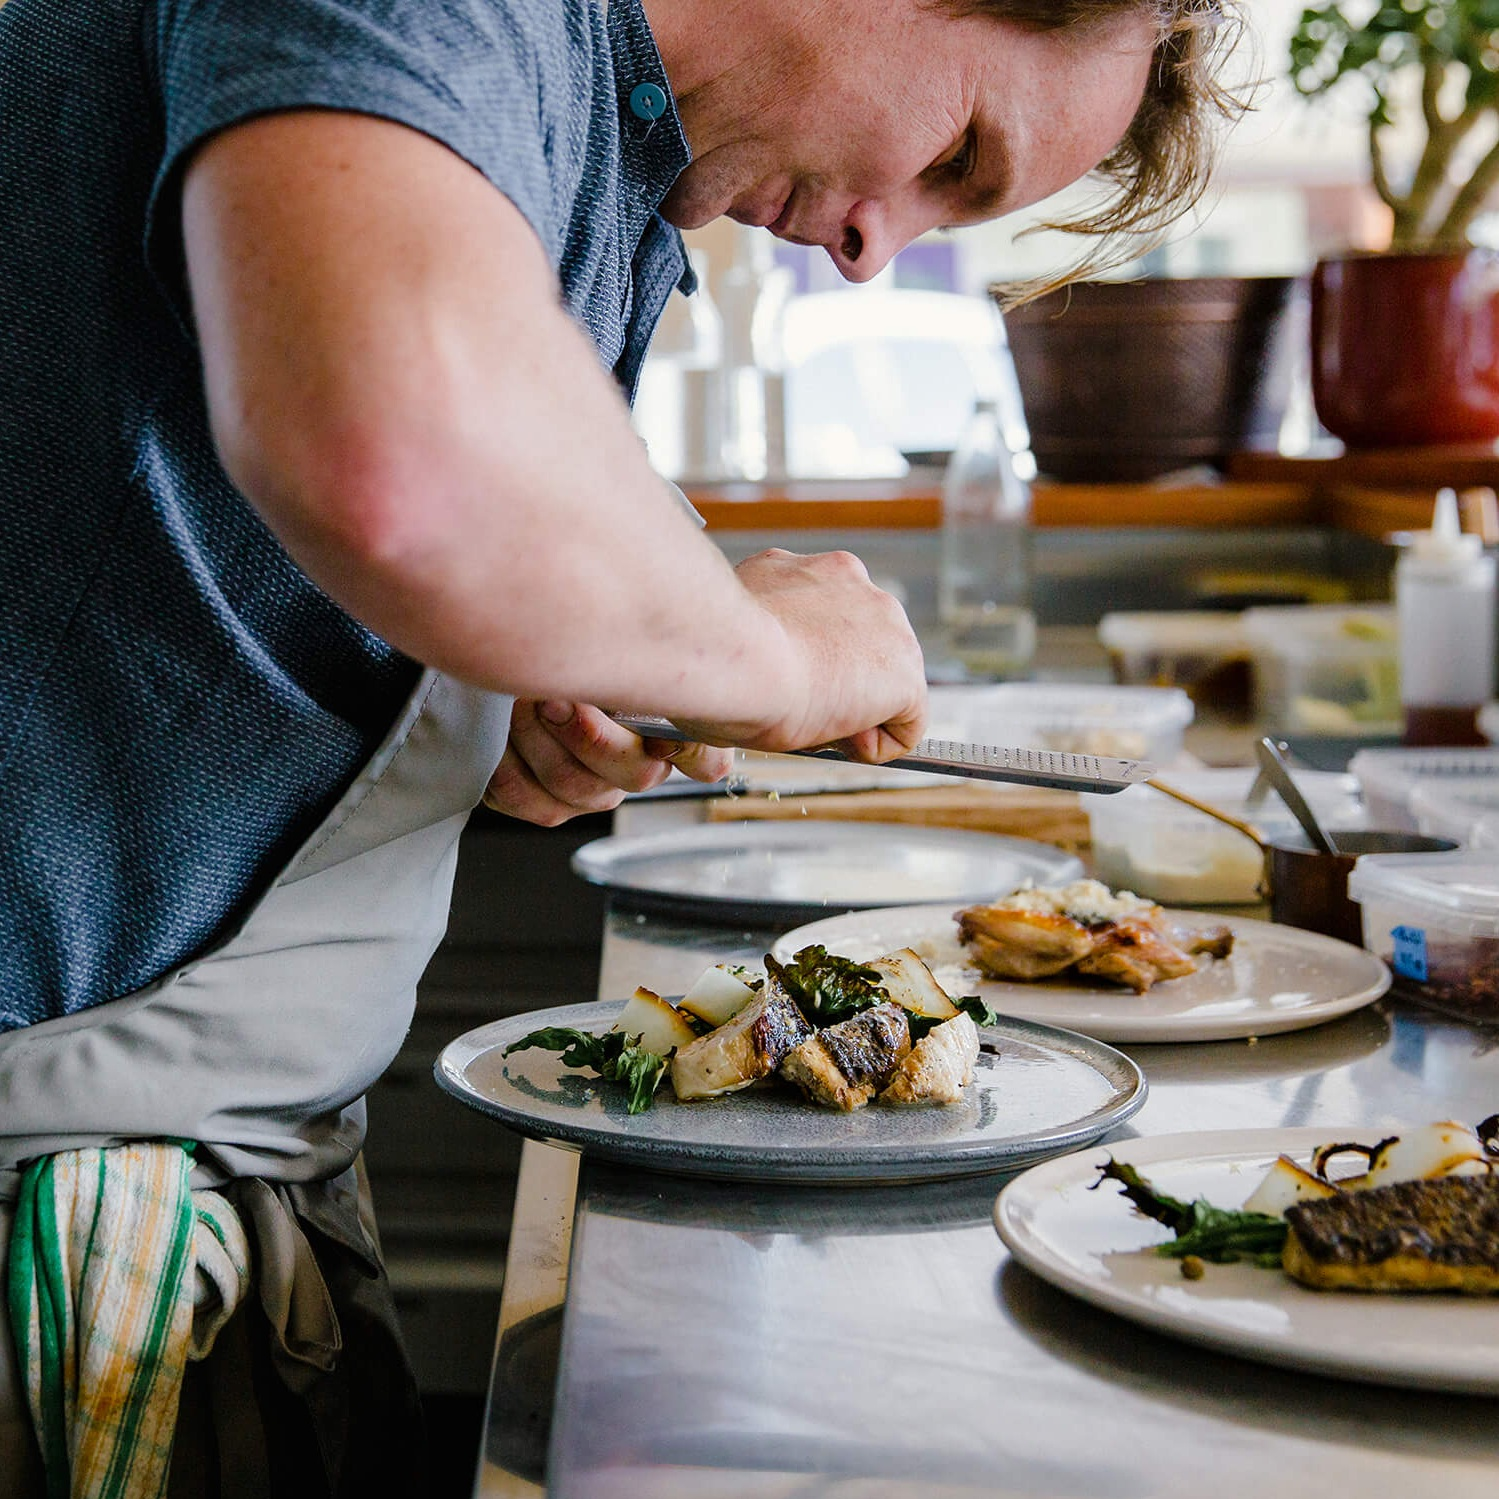 meet ben - Having grown up in Byron Bay, Ben Devlin has always enjoyed a deep connection to the region, its people and producers. After four years at Paper Daisy in Cabarita, it was time to focus on fulfilling his ambition to open his own restaurant. Pipit is that restaurant.